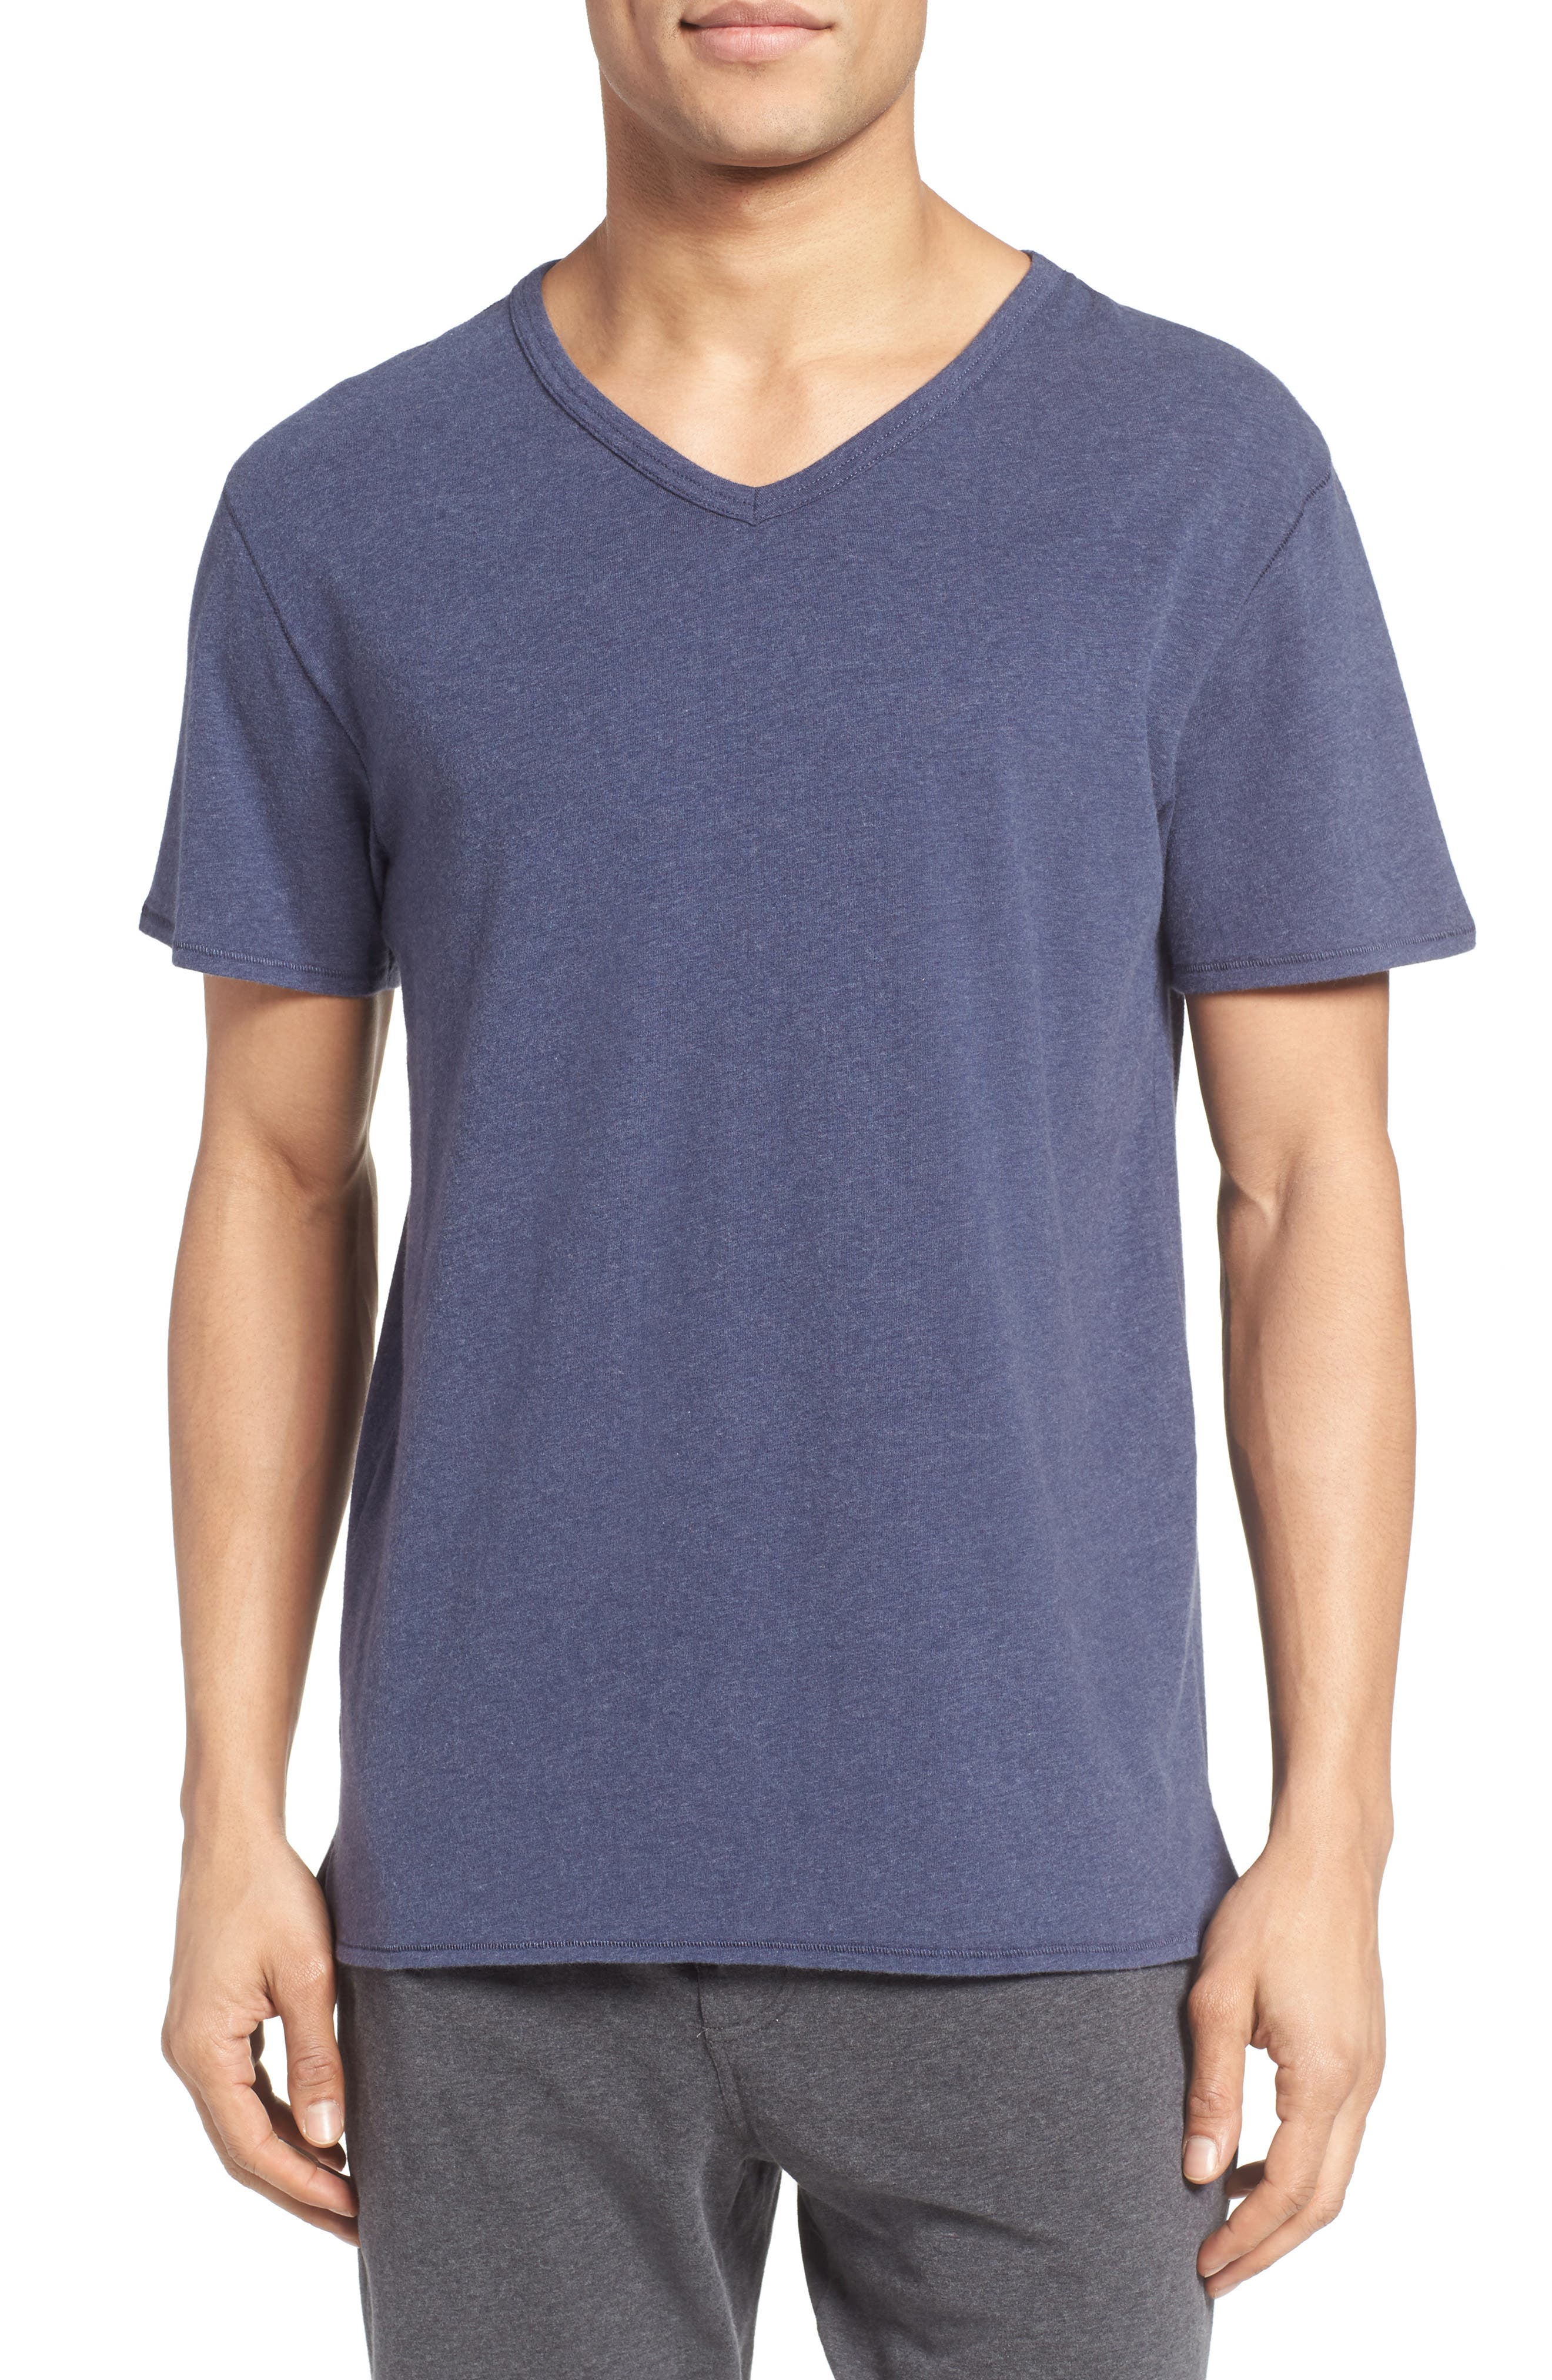 Nordstrom Men's Shop Stretch Cotton V-Neck T-Shirt